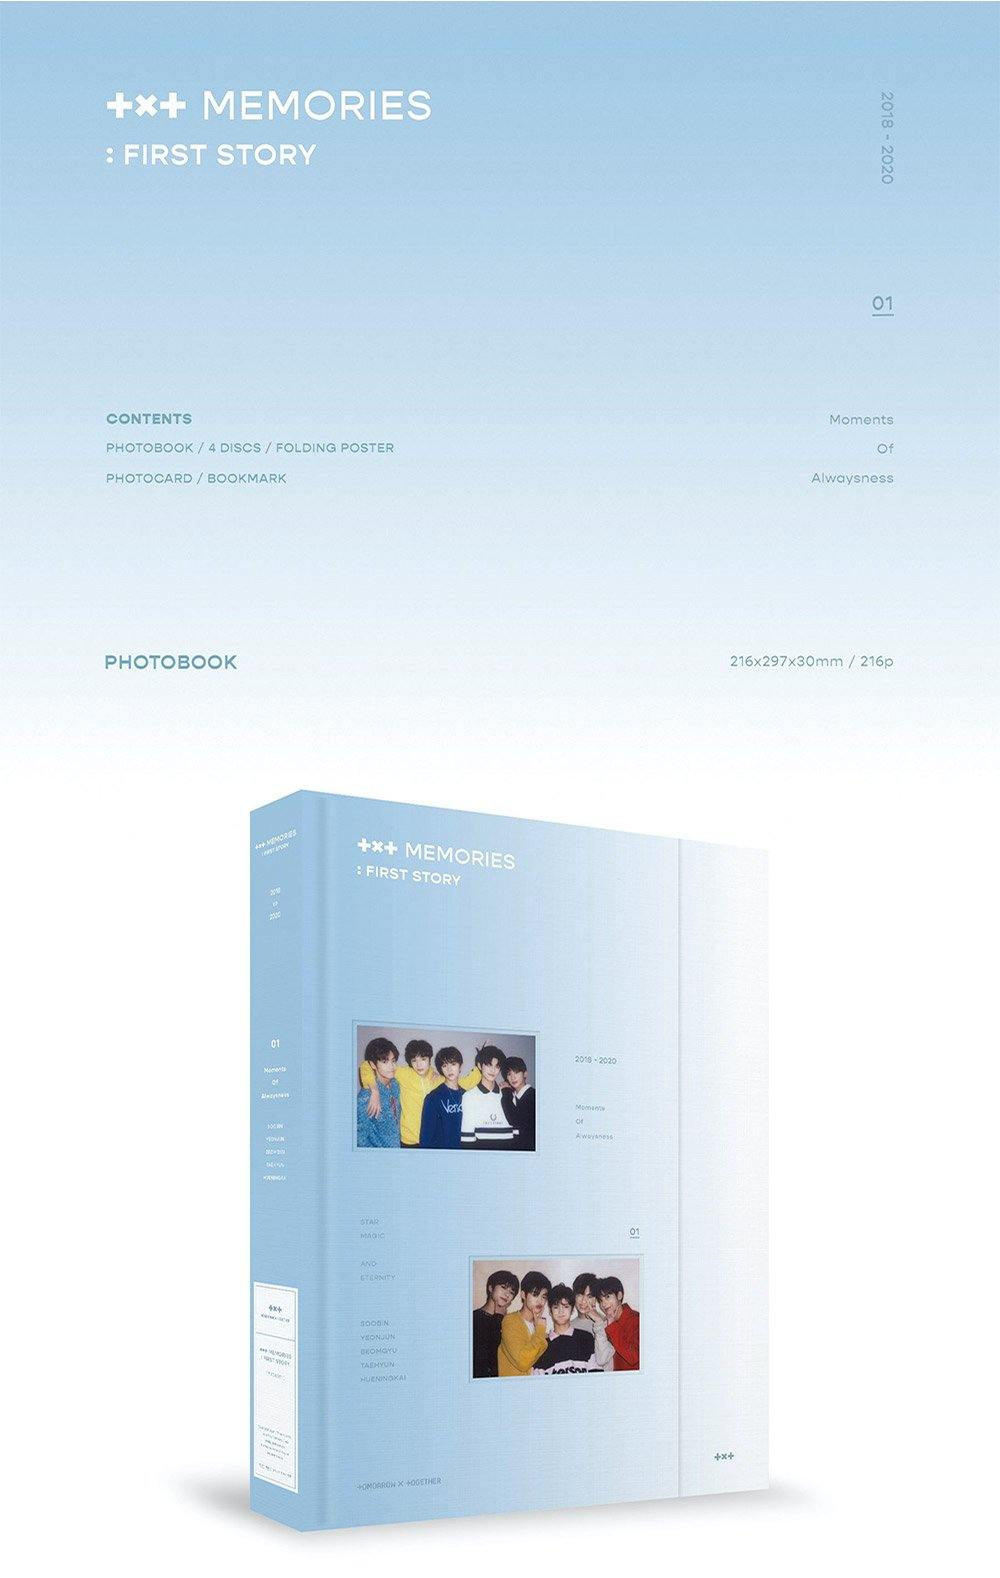 TXT - Memories: First Story - 4 DVDs - Pre-Order